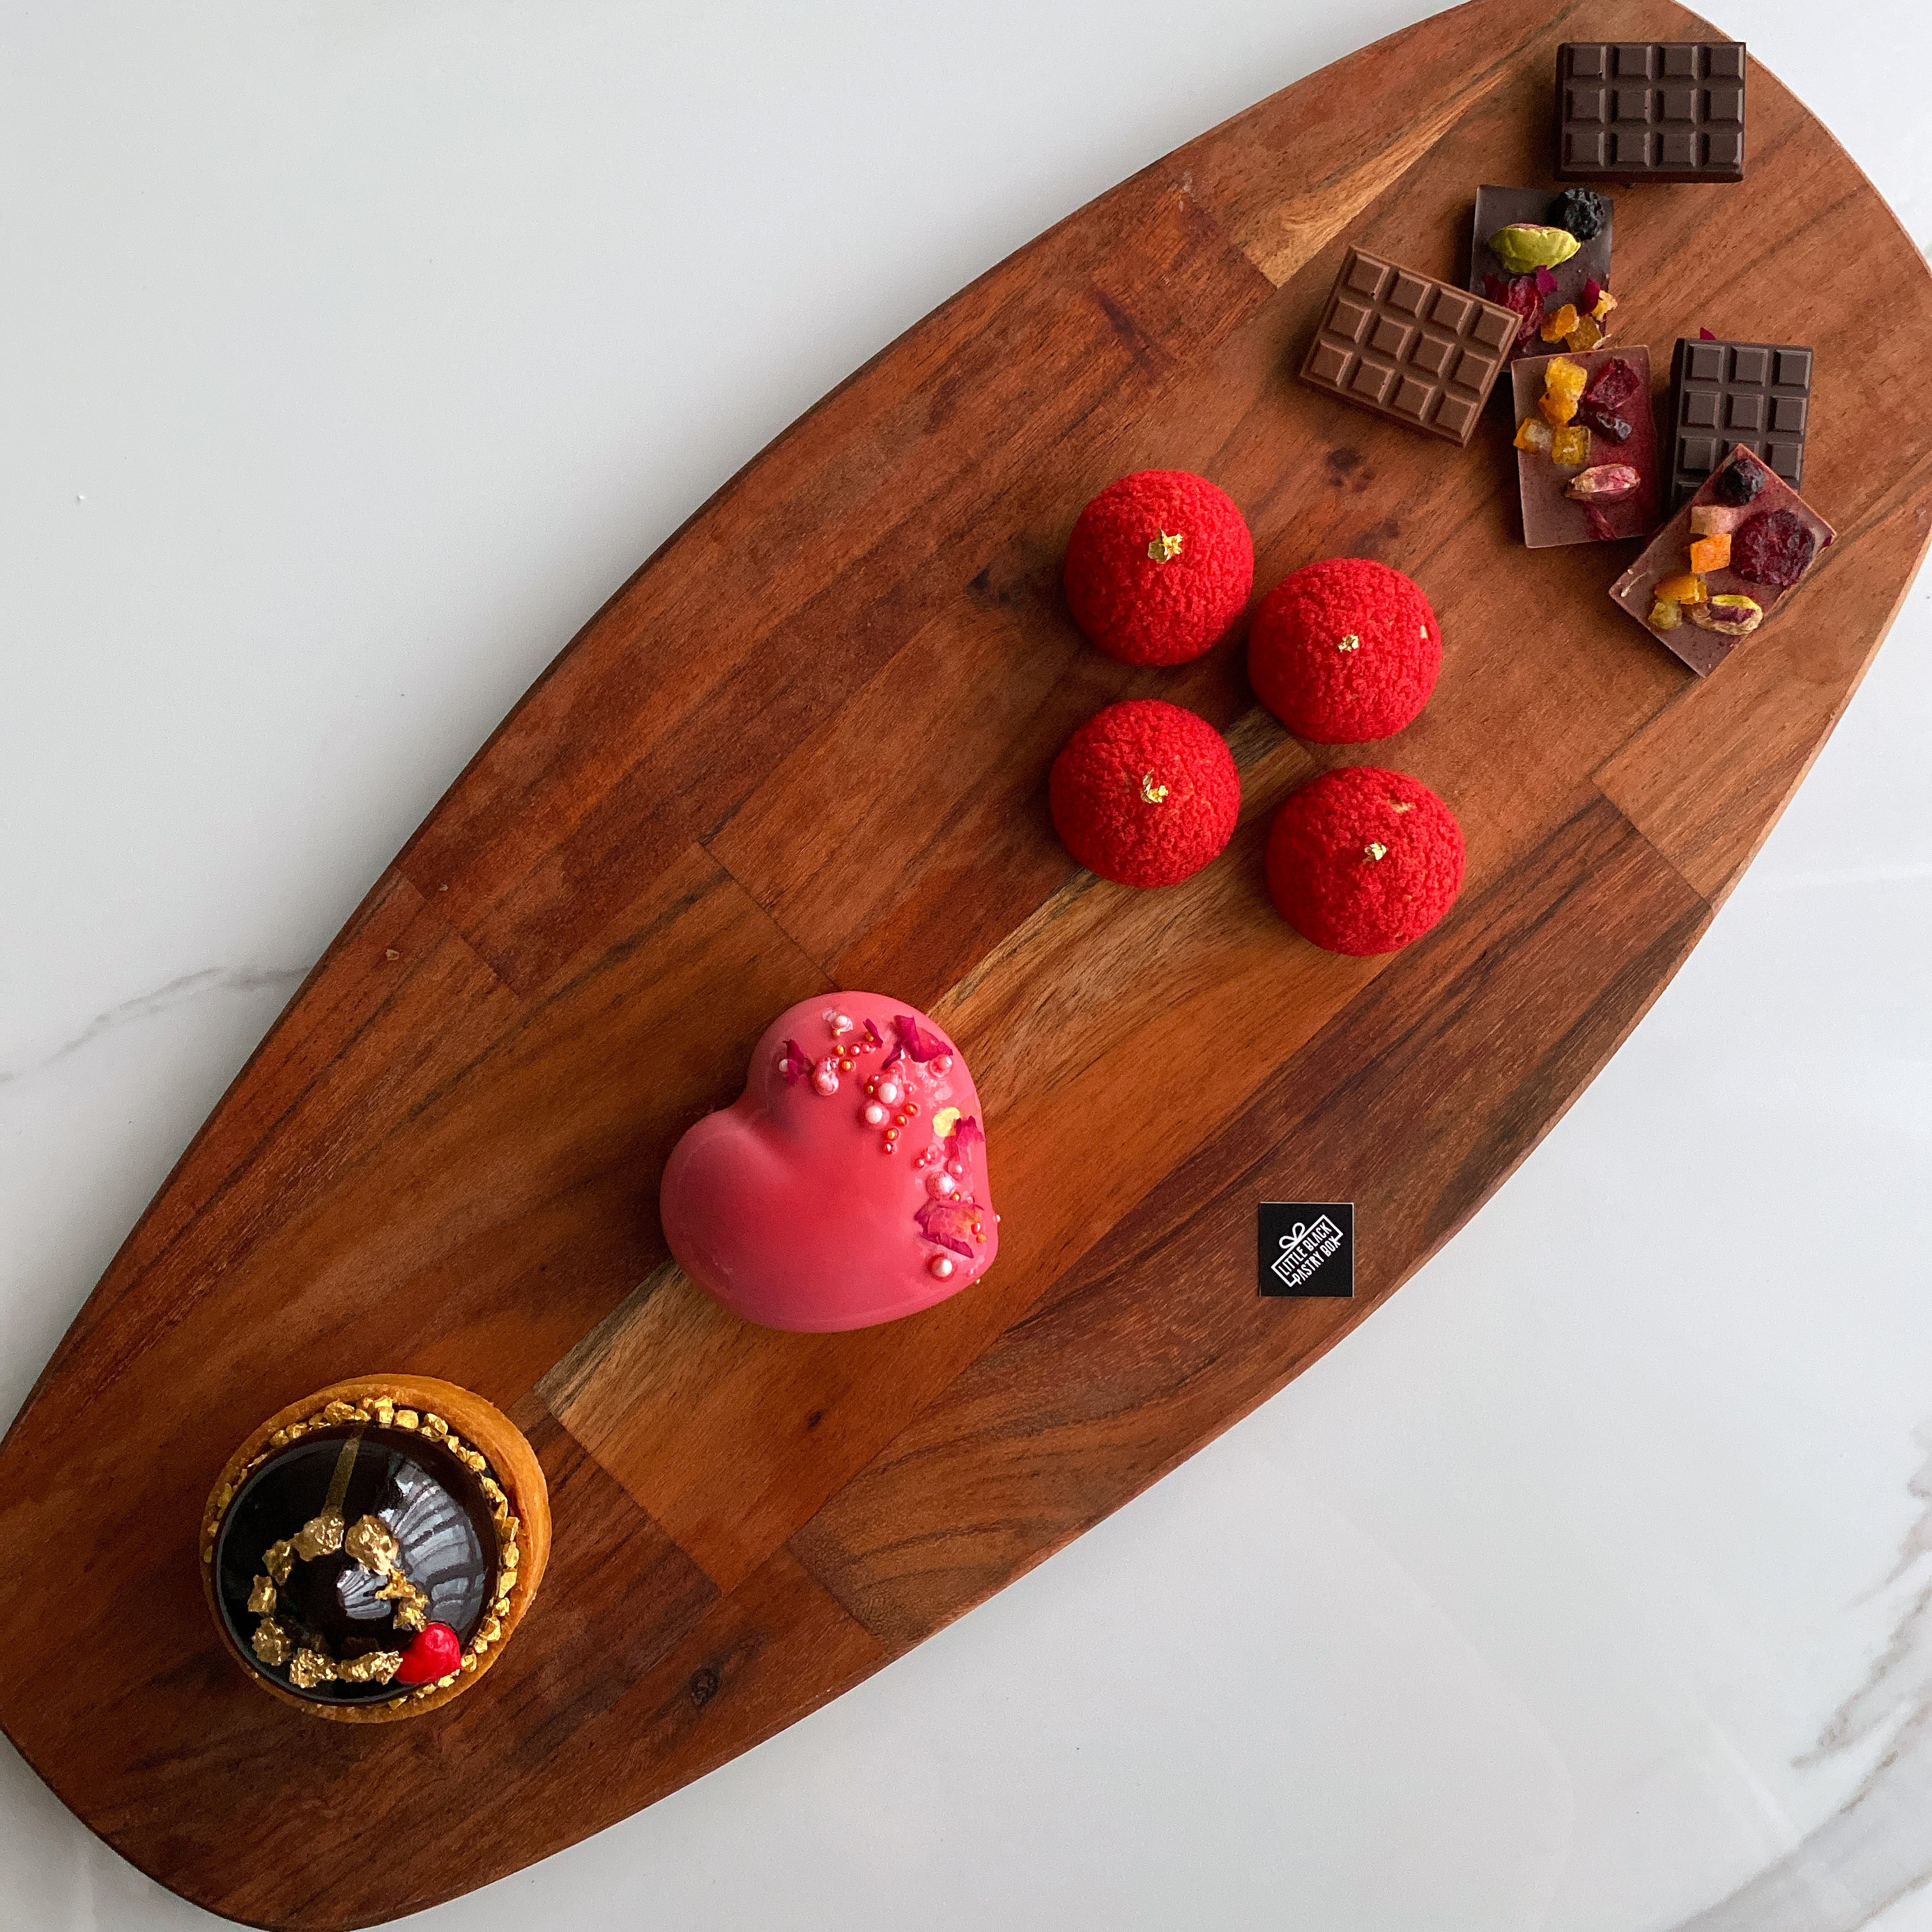 The Flamboyant Flair - Artisan Pastry Box, Macaron, Profiteroles, Petit Gateau, Eclair, Valentine's chocolate, Truffle, Chocolate, Little Black Pastry Box